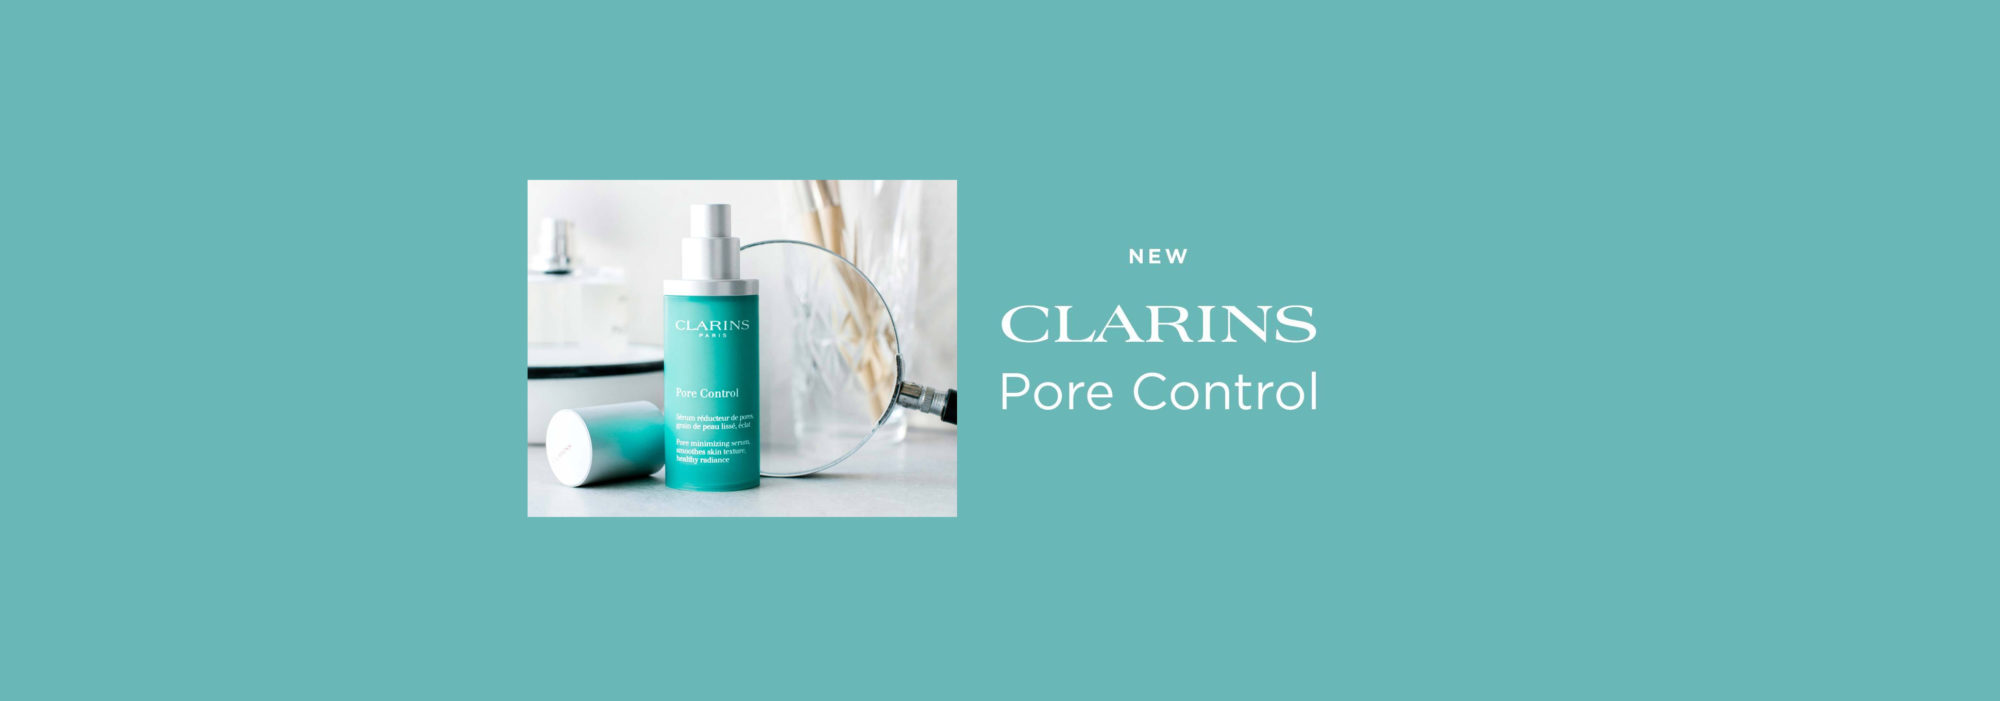 NEW Clarins Pore Control at Frontlinestyle